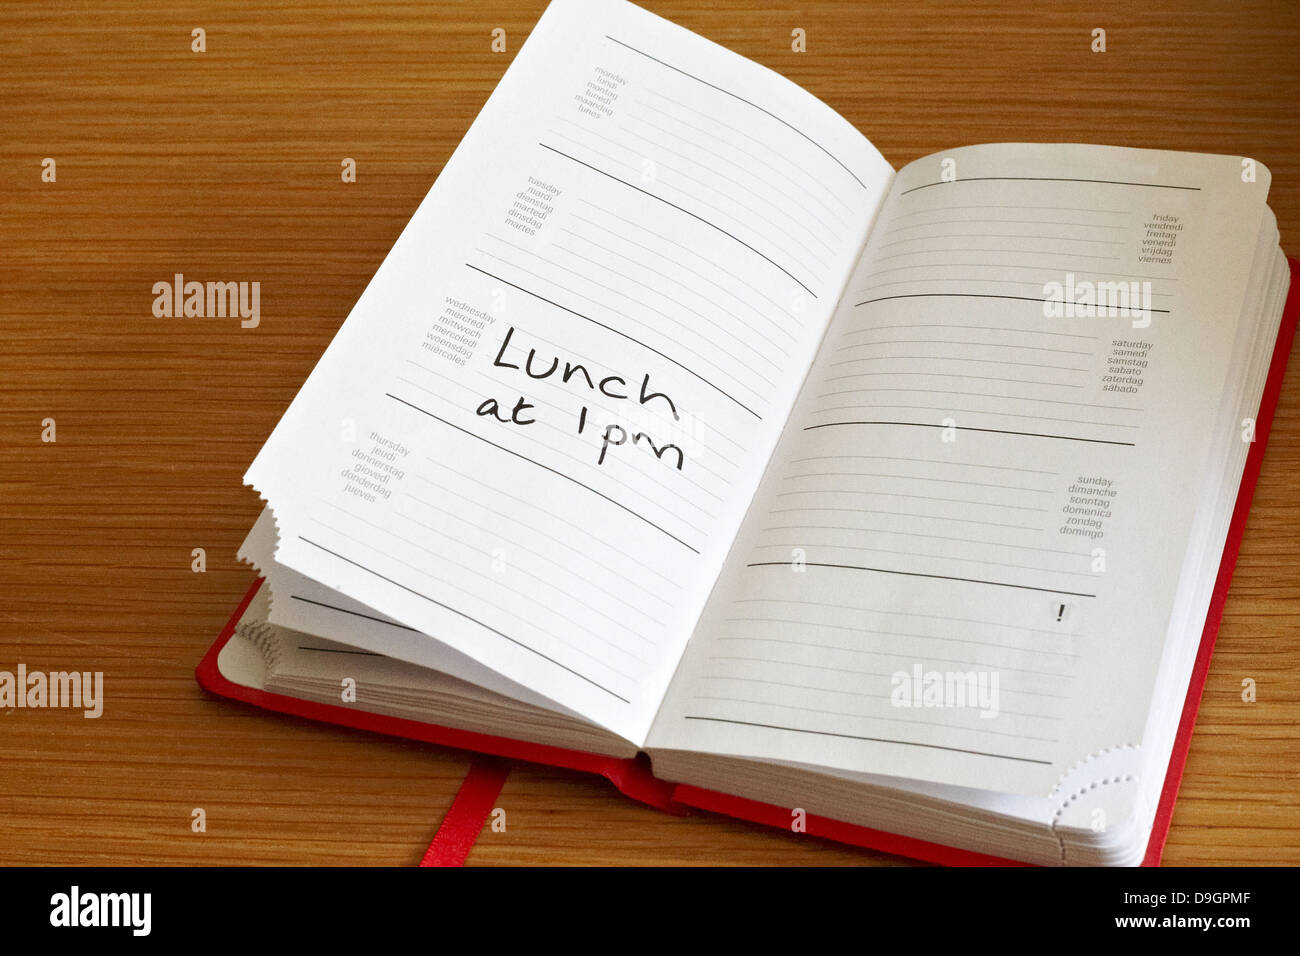 Generic diary showing lunch appointment - Stock Image